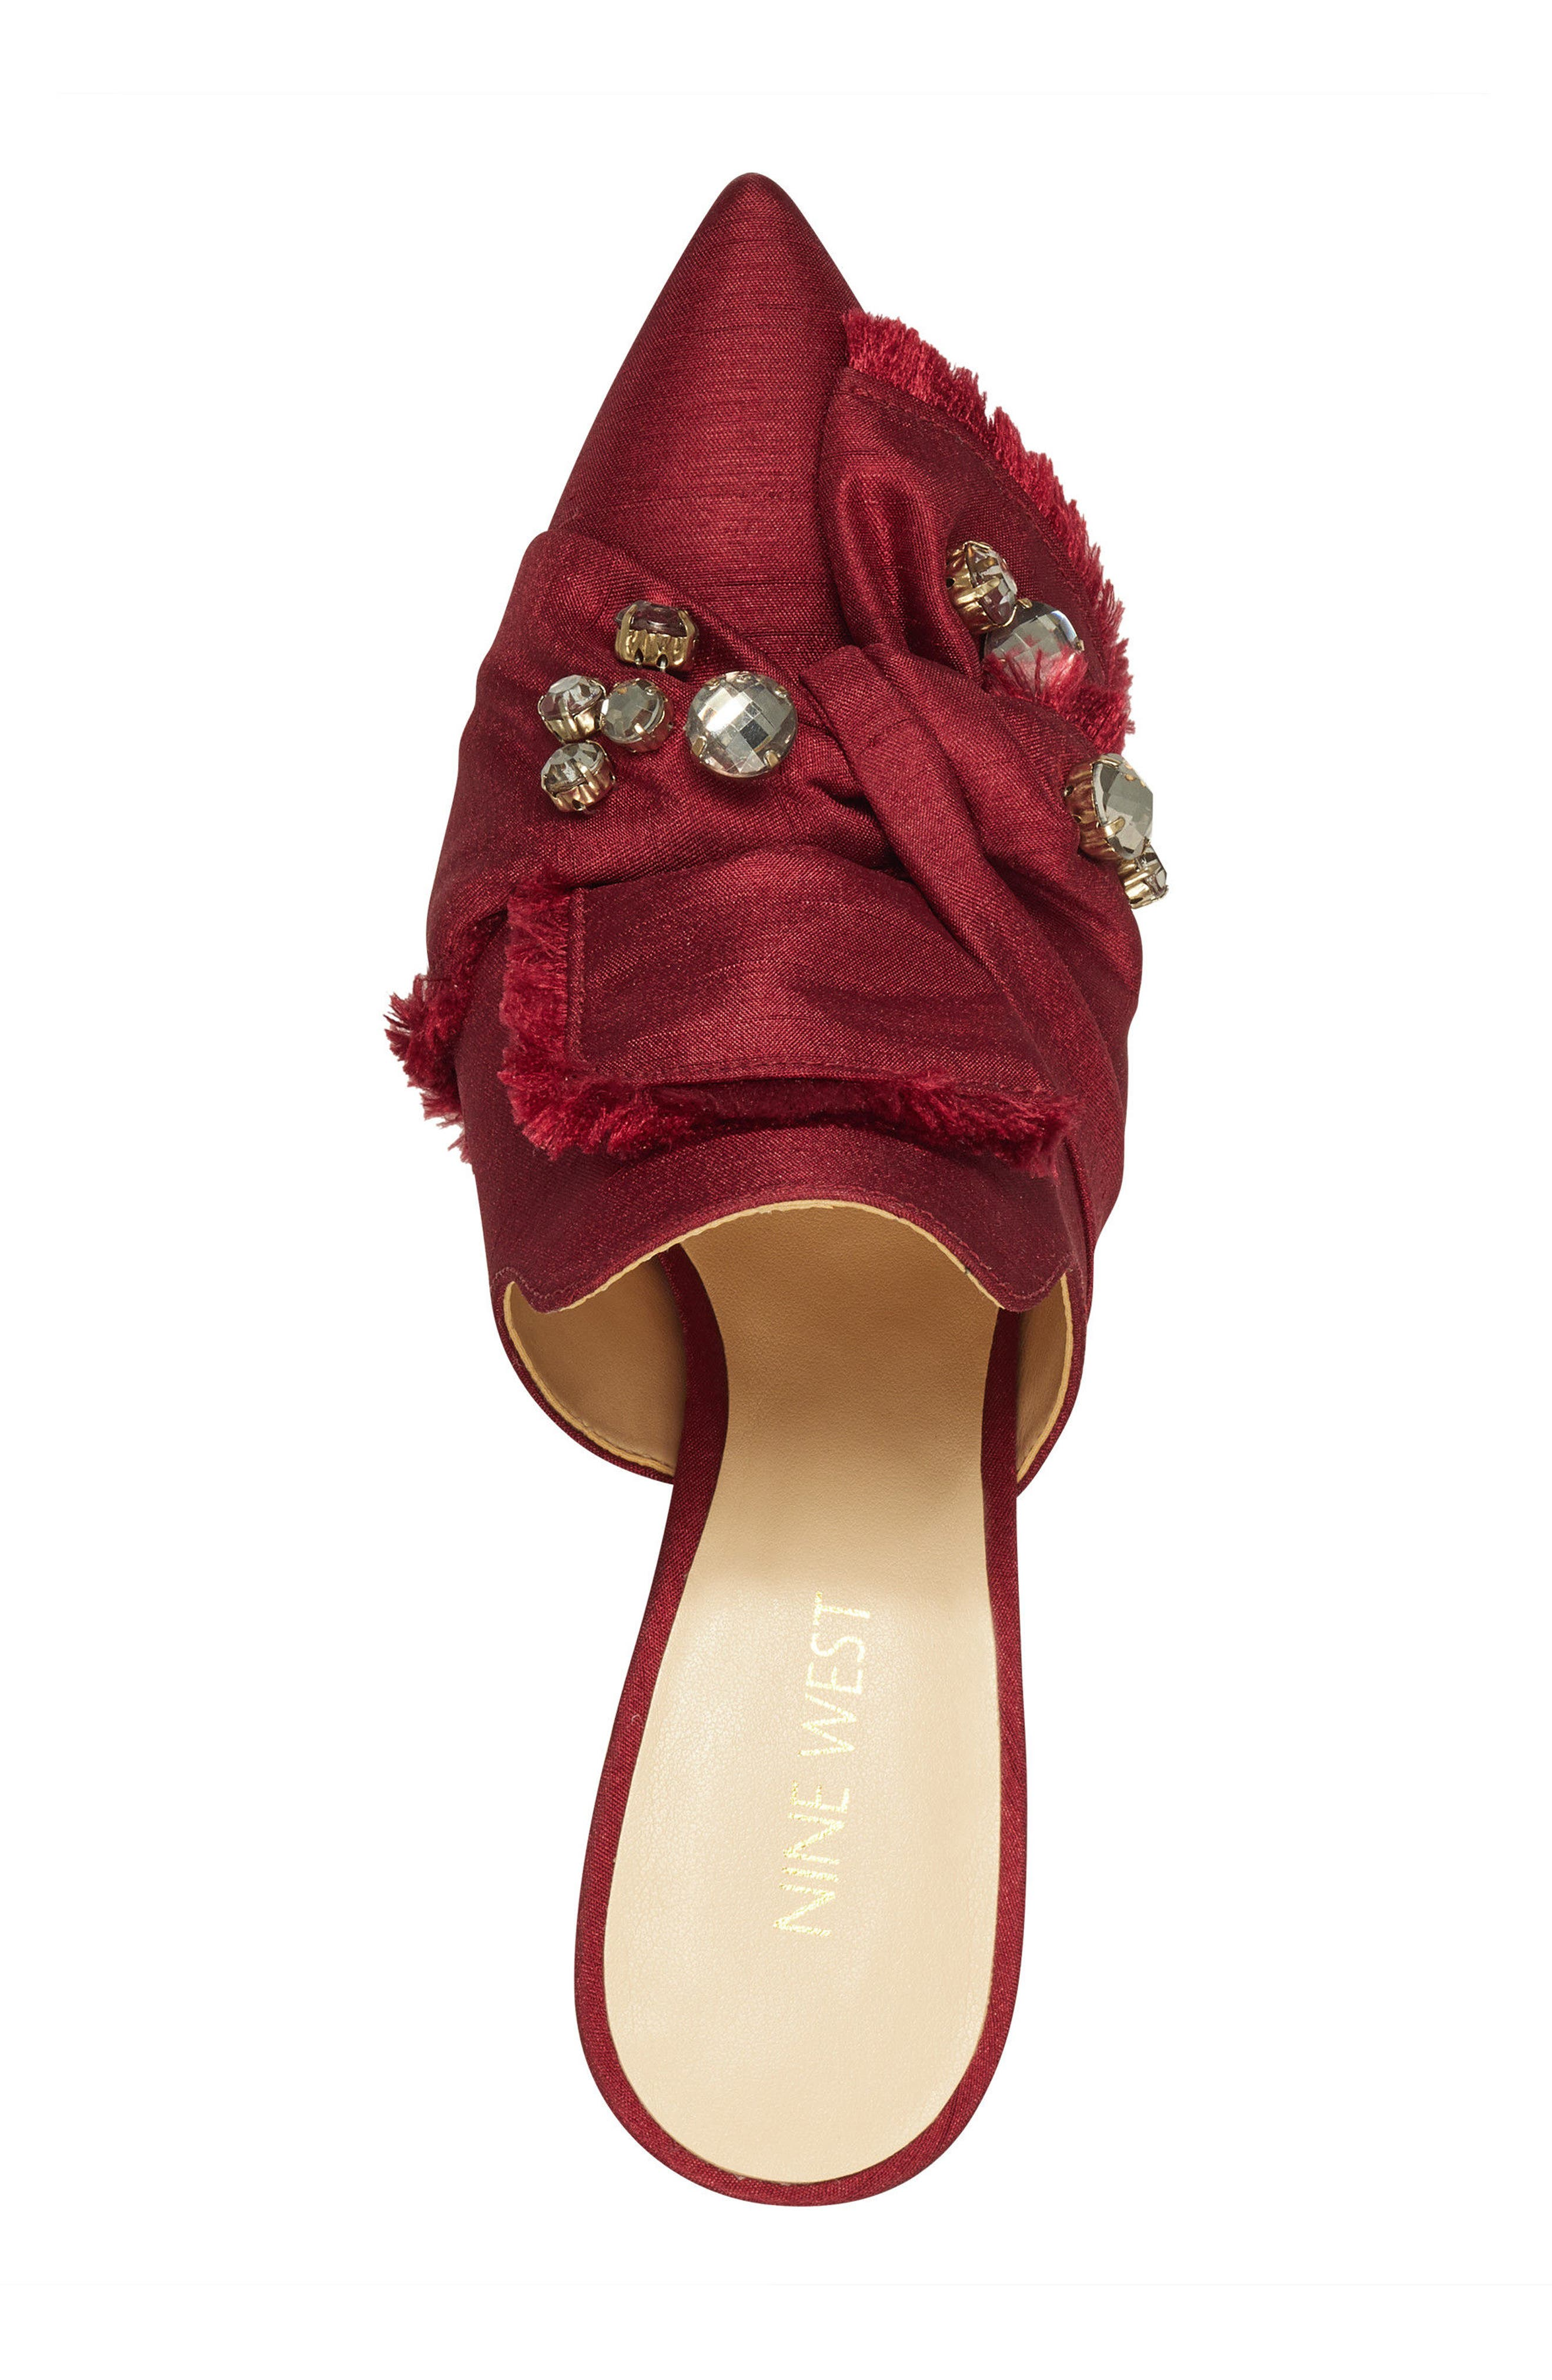 Macadamia Embellished Mule,                             Alternate thumbnail 5, color,                             Red Fabric